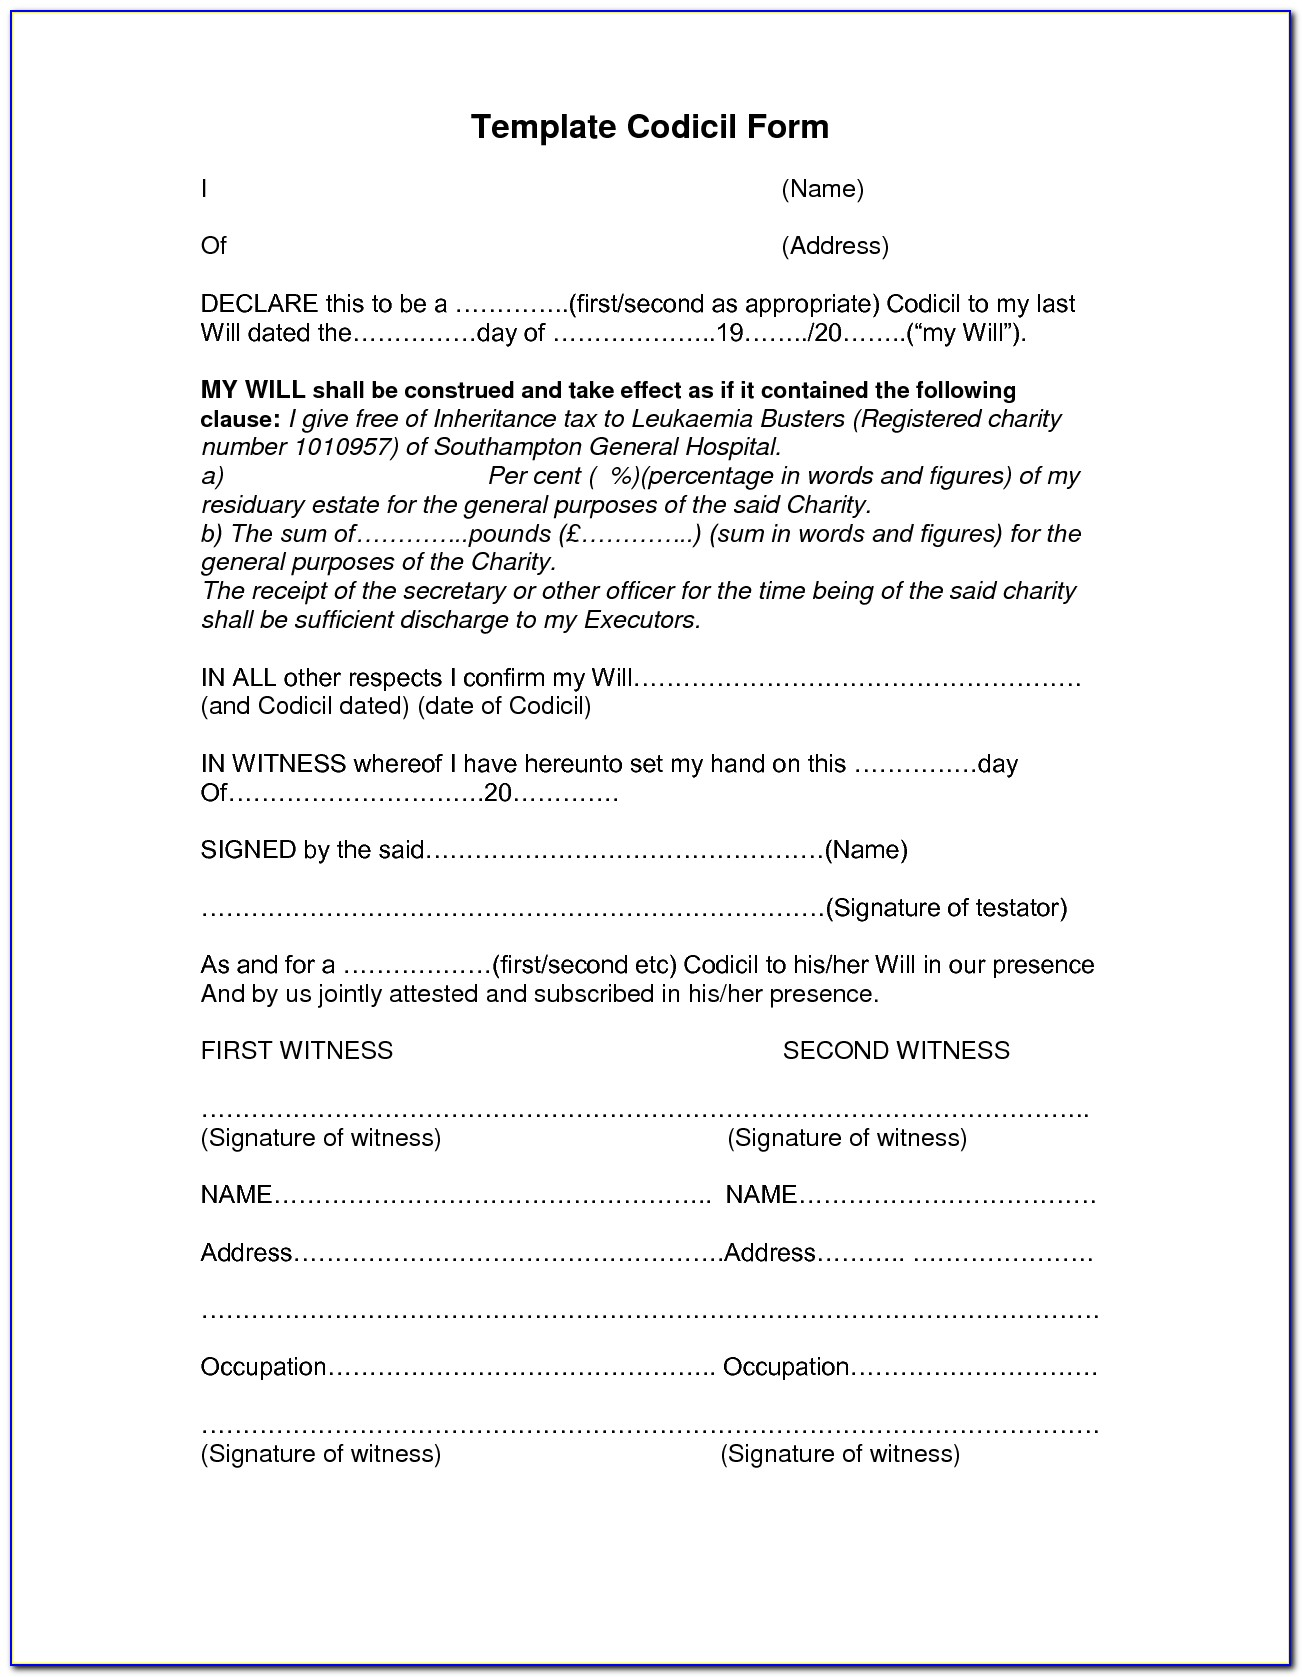 Free Codicil Form For Will